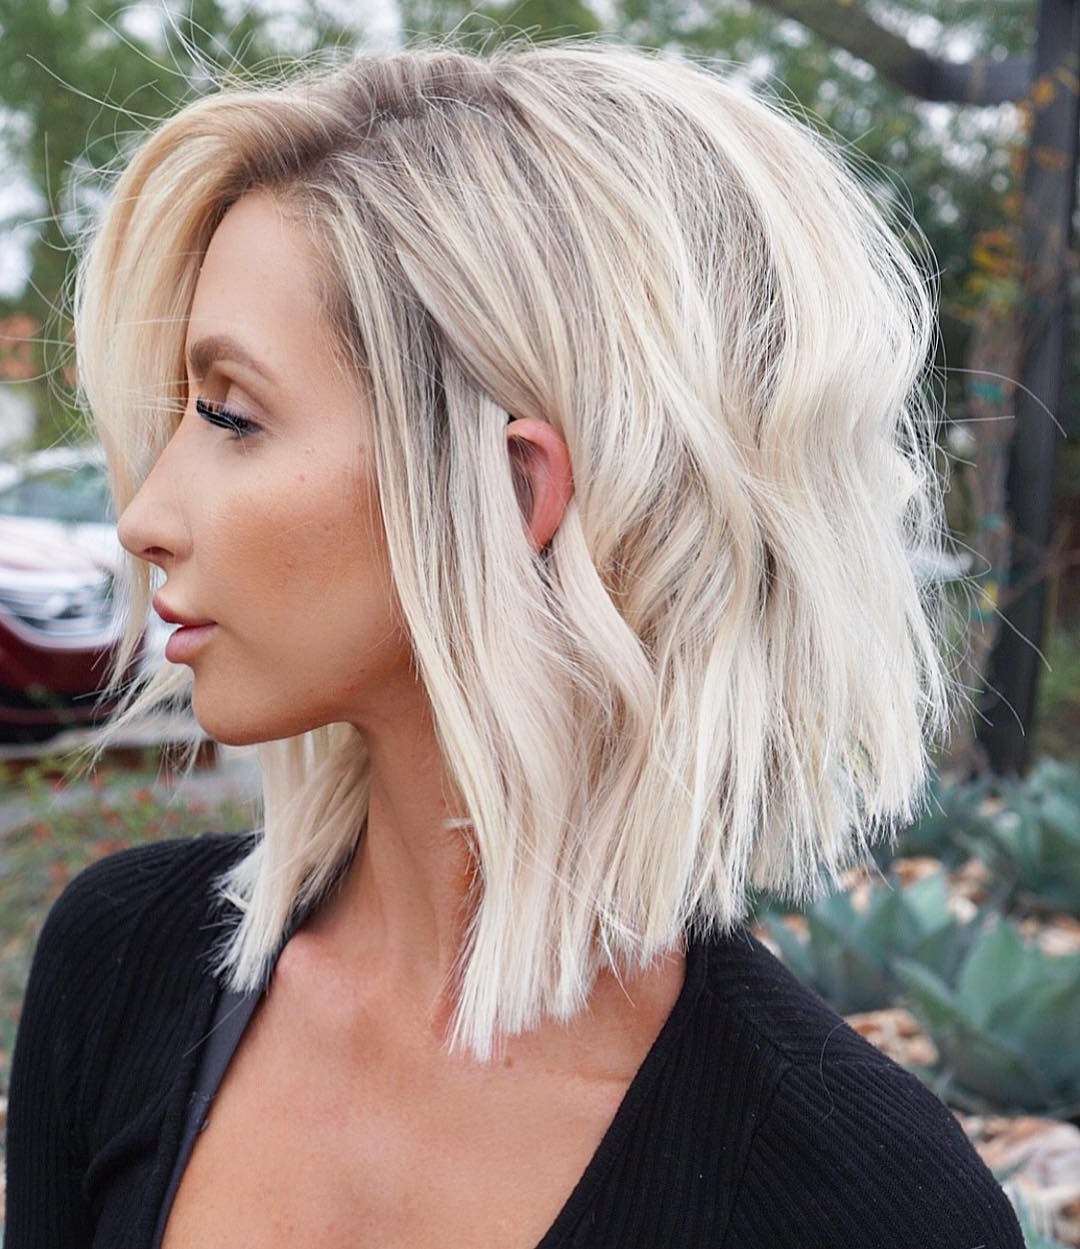 Find Your Best Bob Haircut For 2019 Intended For Razored Shaggy Bob Hairstyles With Bangs (View 10 of 20)